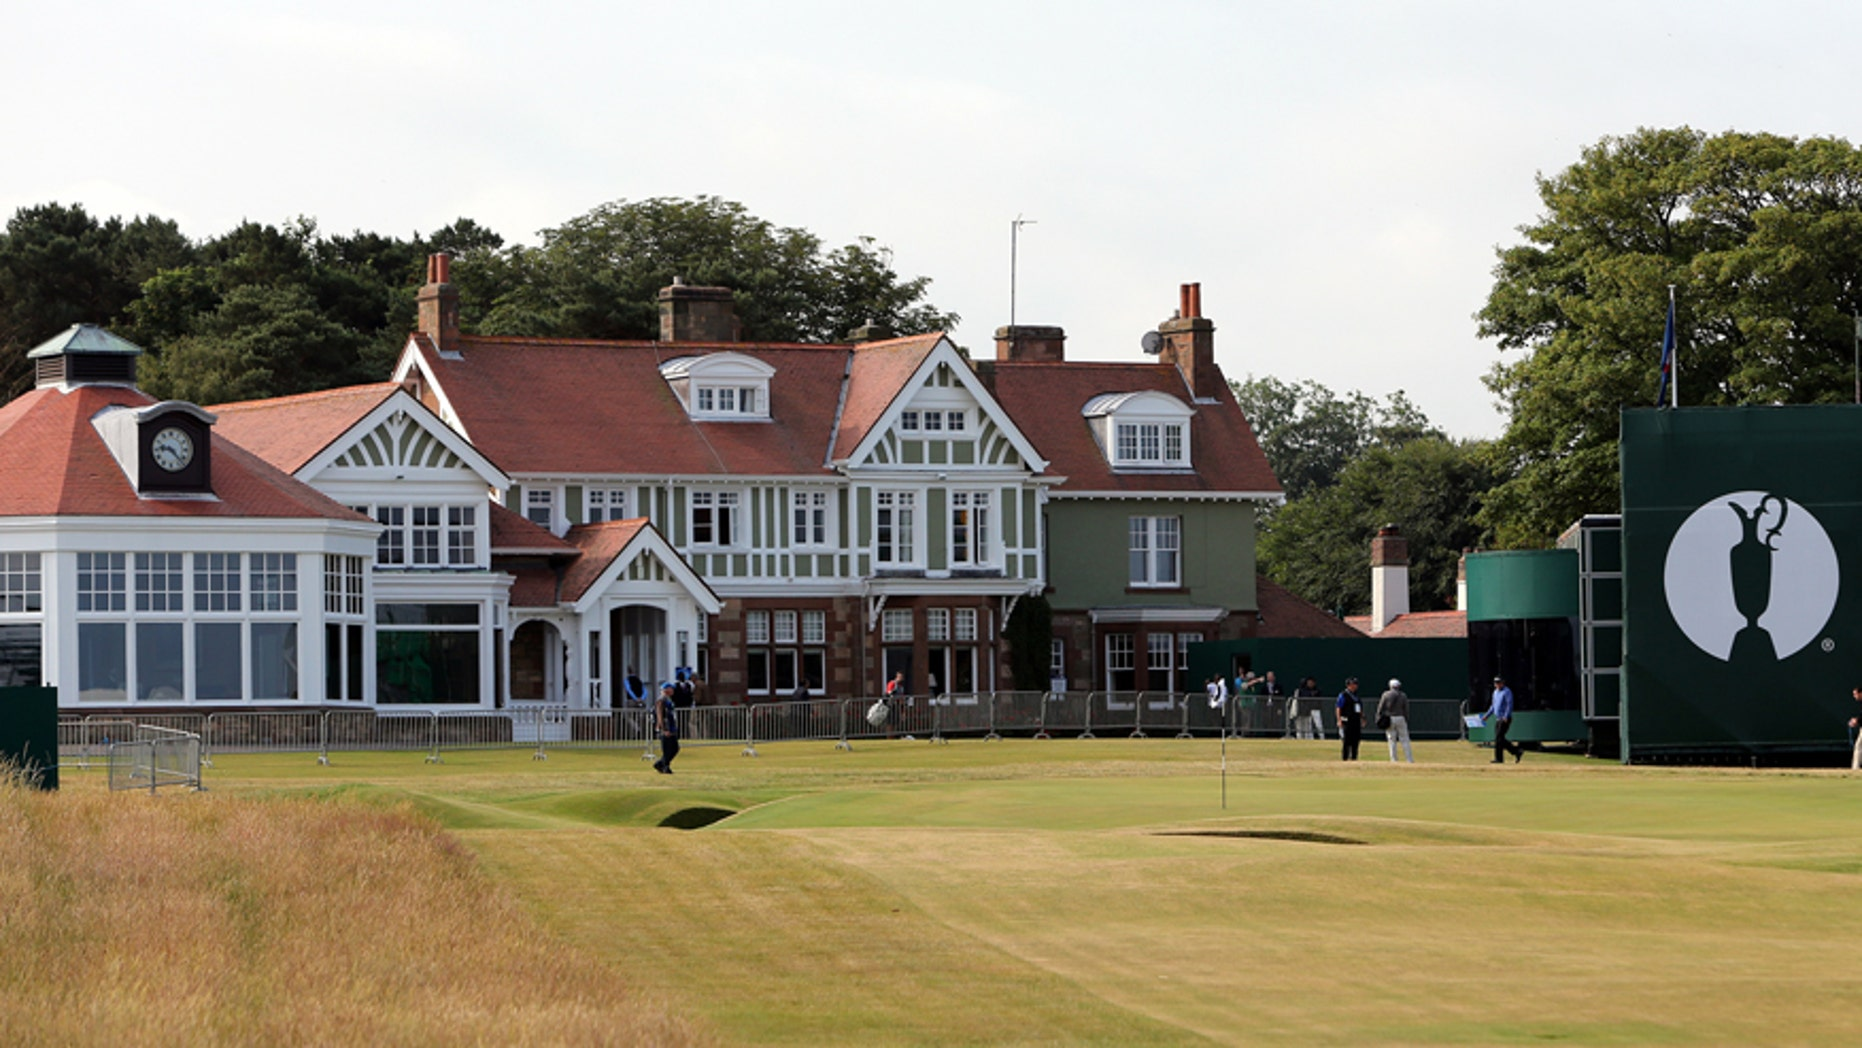 July 14, 2013: The clubhouse at Muirfield golf course in Muirfield, Scotland.